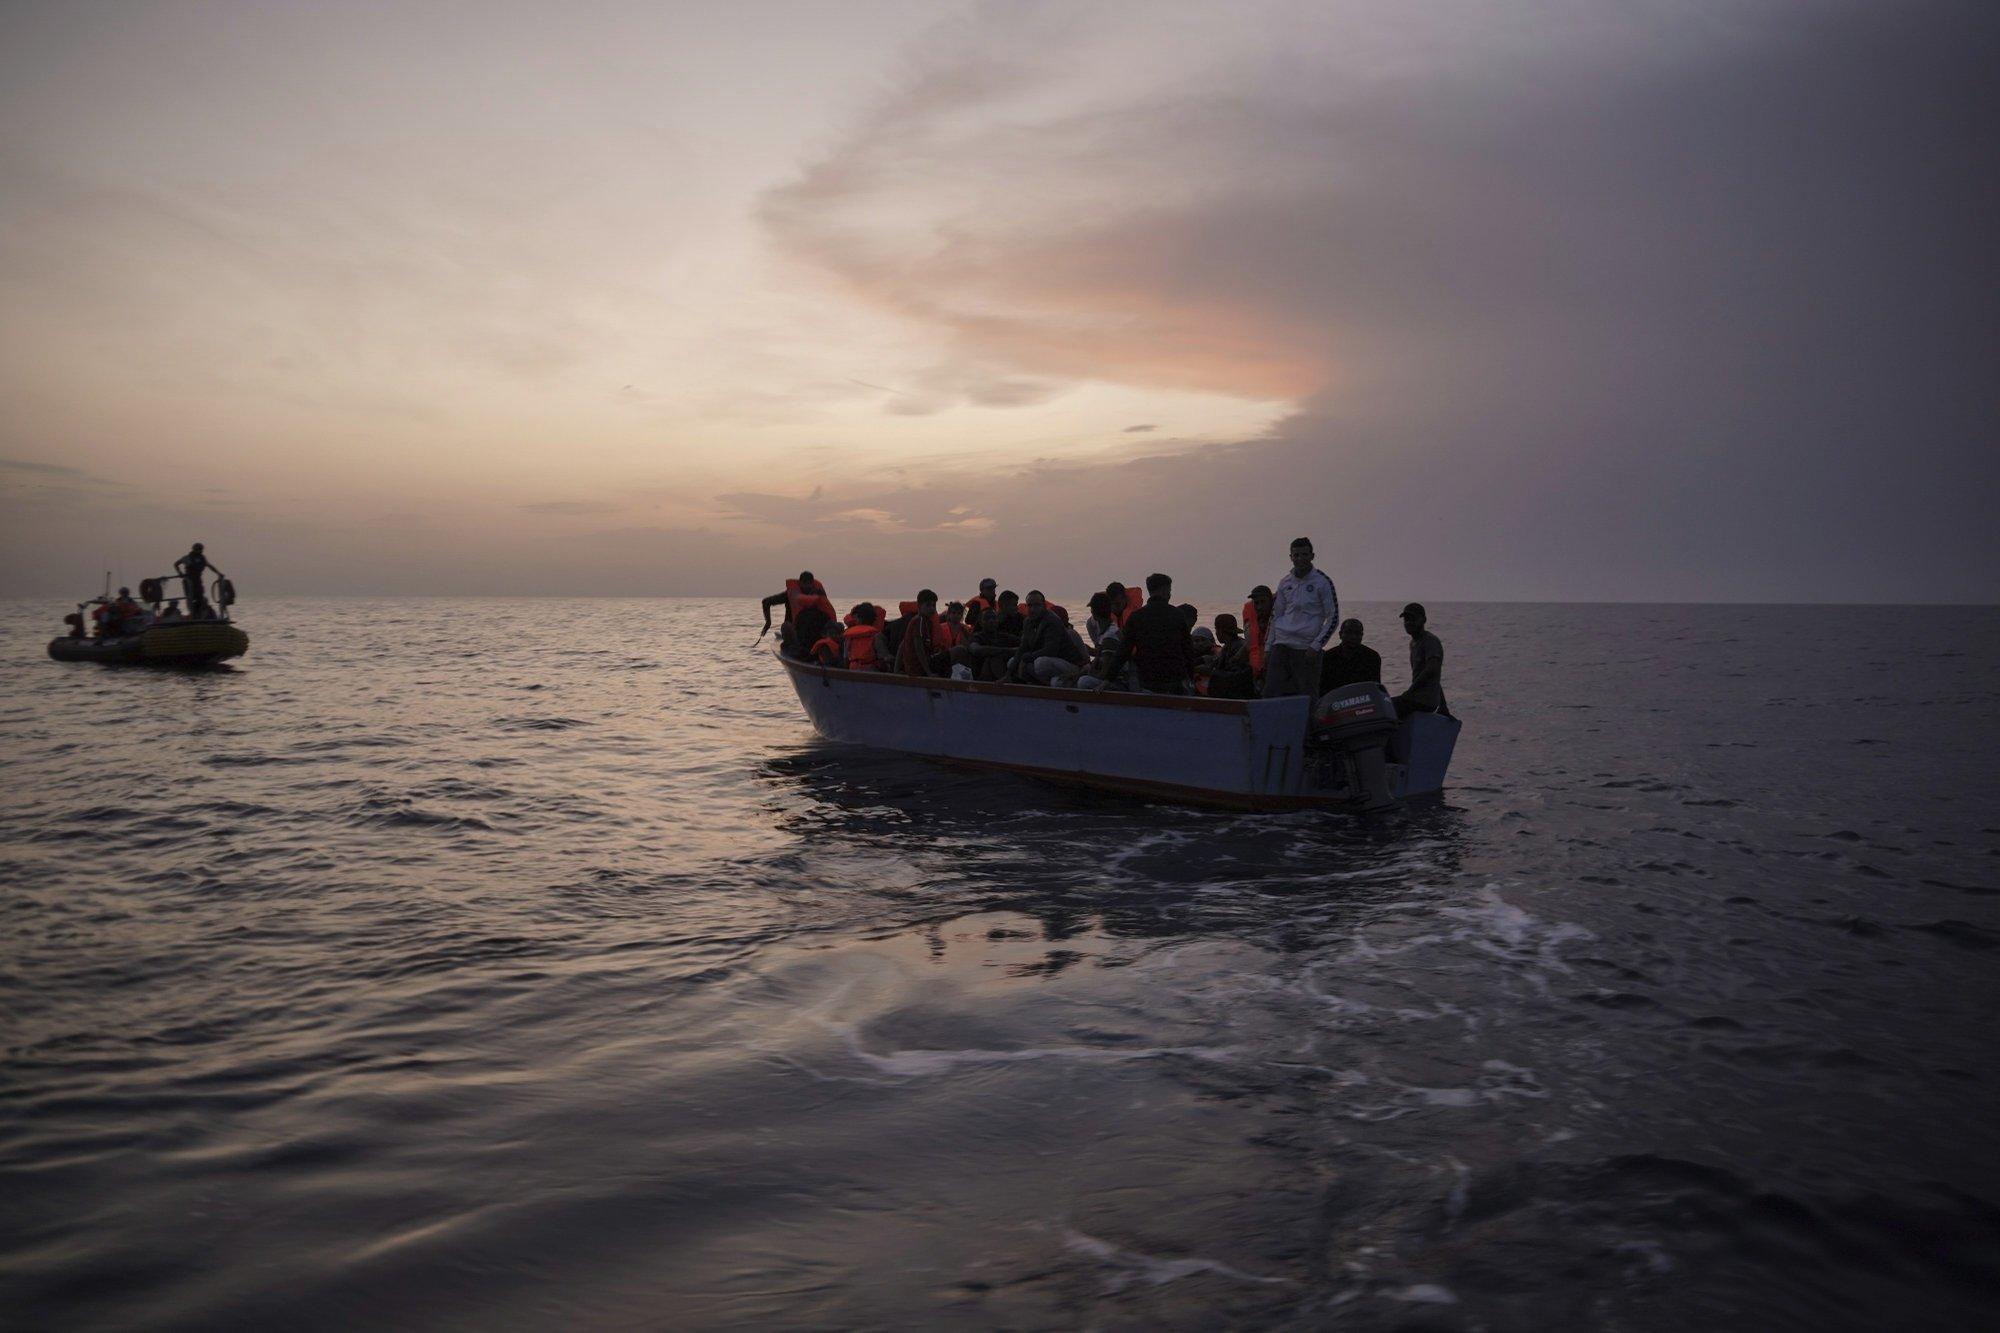 In this Sept. 19, 2019 photo, migrants on an overcrowded wooden boat wait to be rescued by the Ocean Viking humanitarian ship in the Mediterranean Sea. The misery of migrants in Libya has spawned a thriving and highly lucrative business, in part funded by the EU and enabled by the United Nations, an Associated Press investigation has found. (AP Photo/Renata Brito)